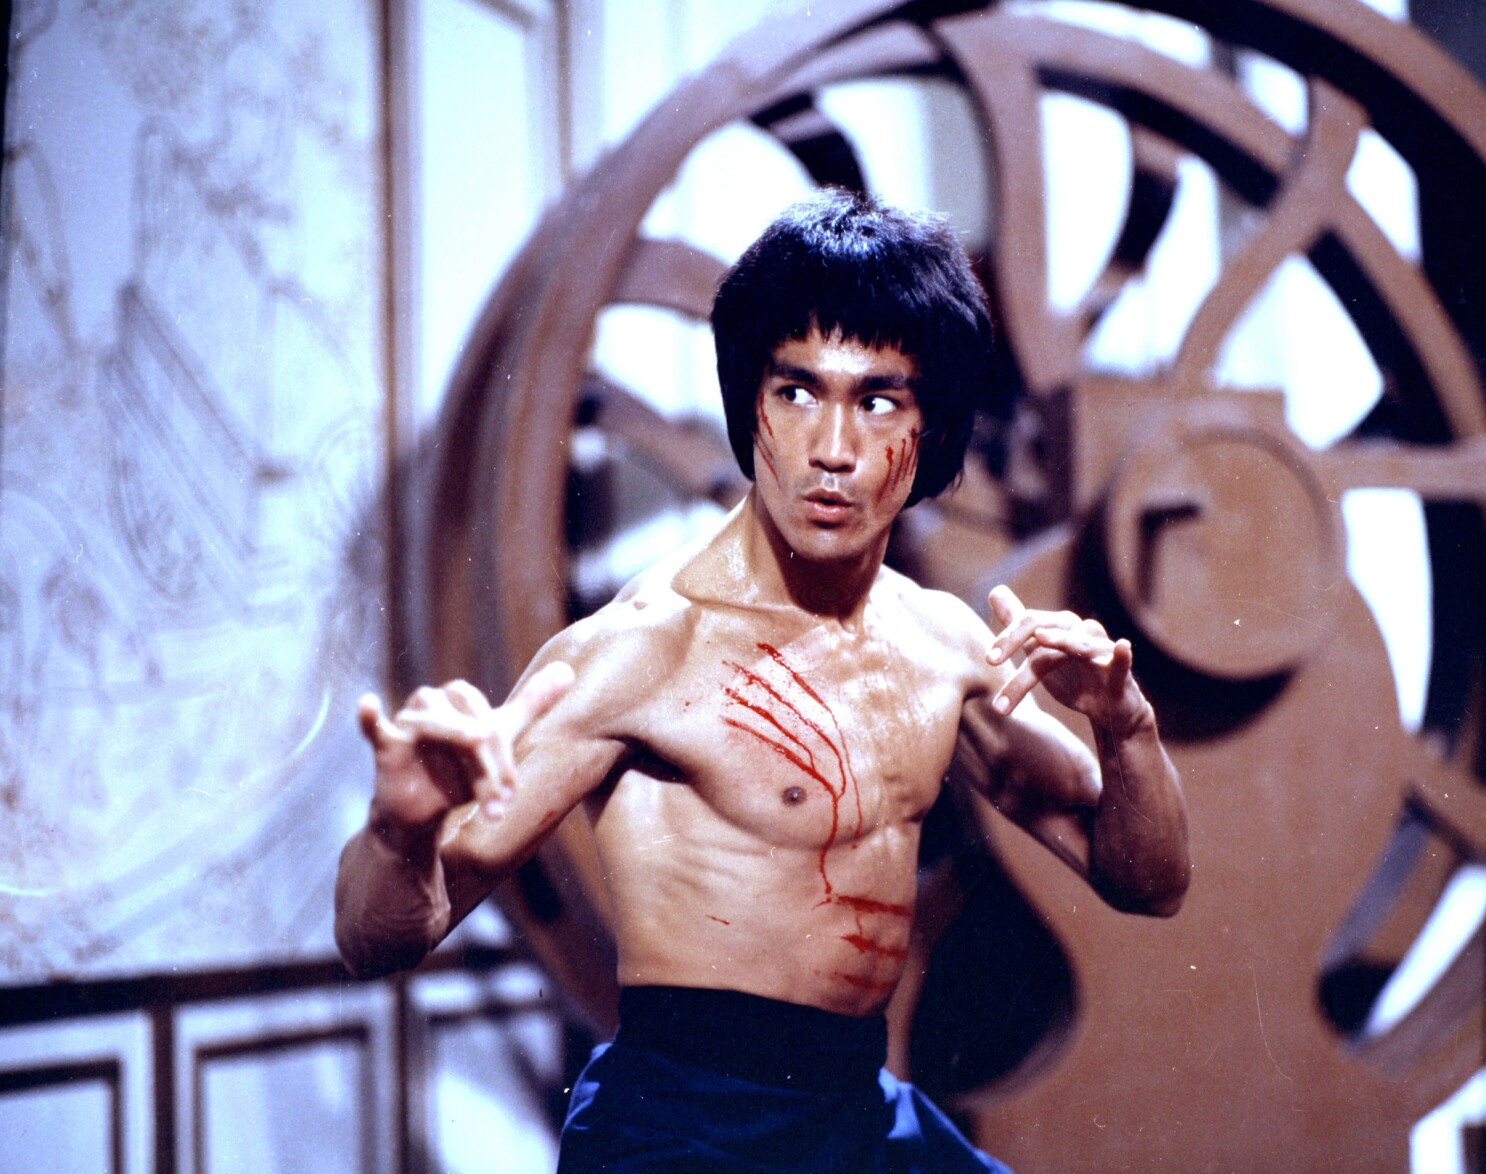 Bruce Lee S Training Partner Counters Once Upon A Time Portrayal Of The Late Icon Los Angeles Times